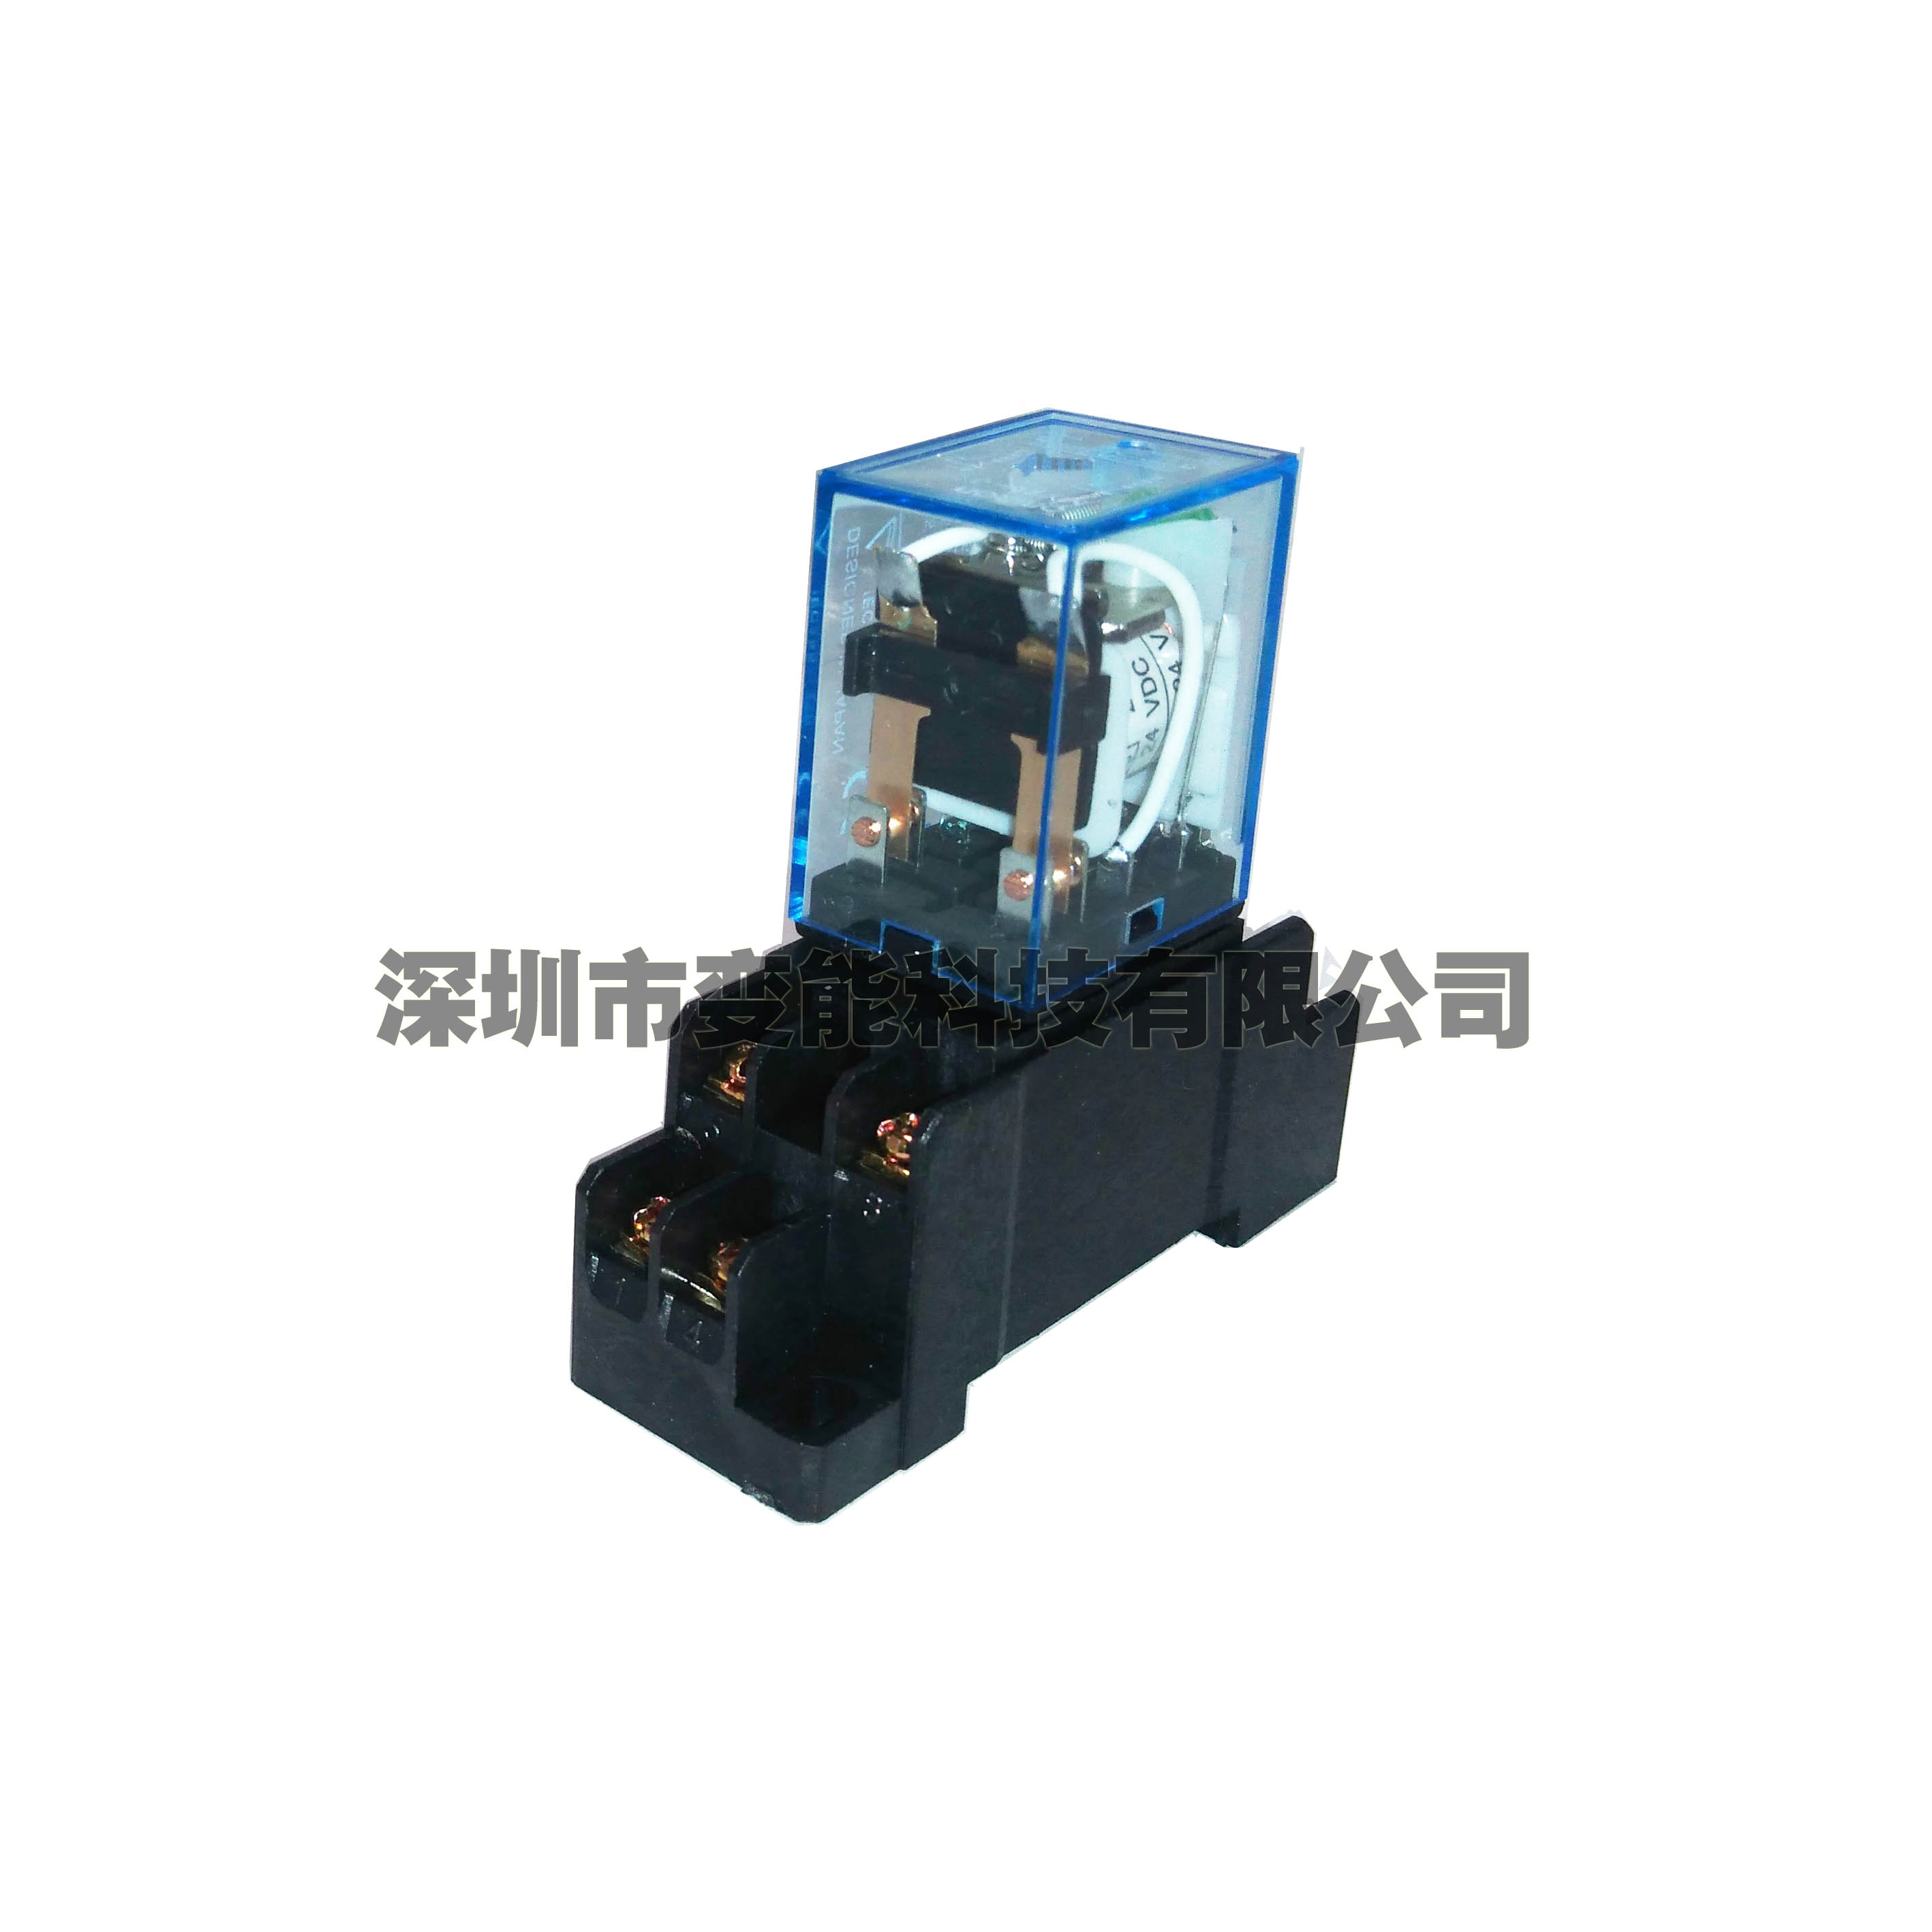 Usd 652 Electromagnetic Switch 24v5a With Light Stepper Motor Servo Controller Single Axis Biaxial Machine Screen Plc Dedicated